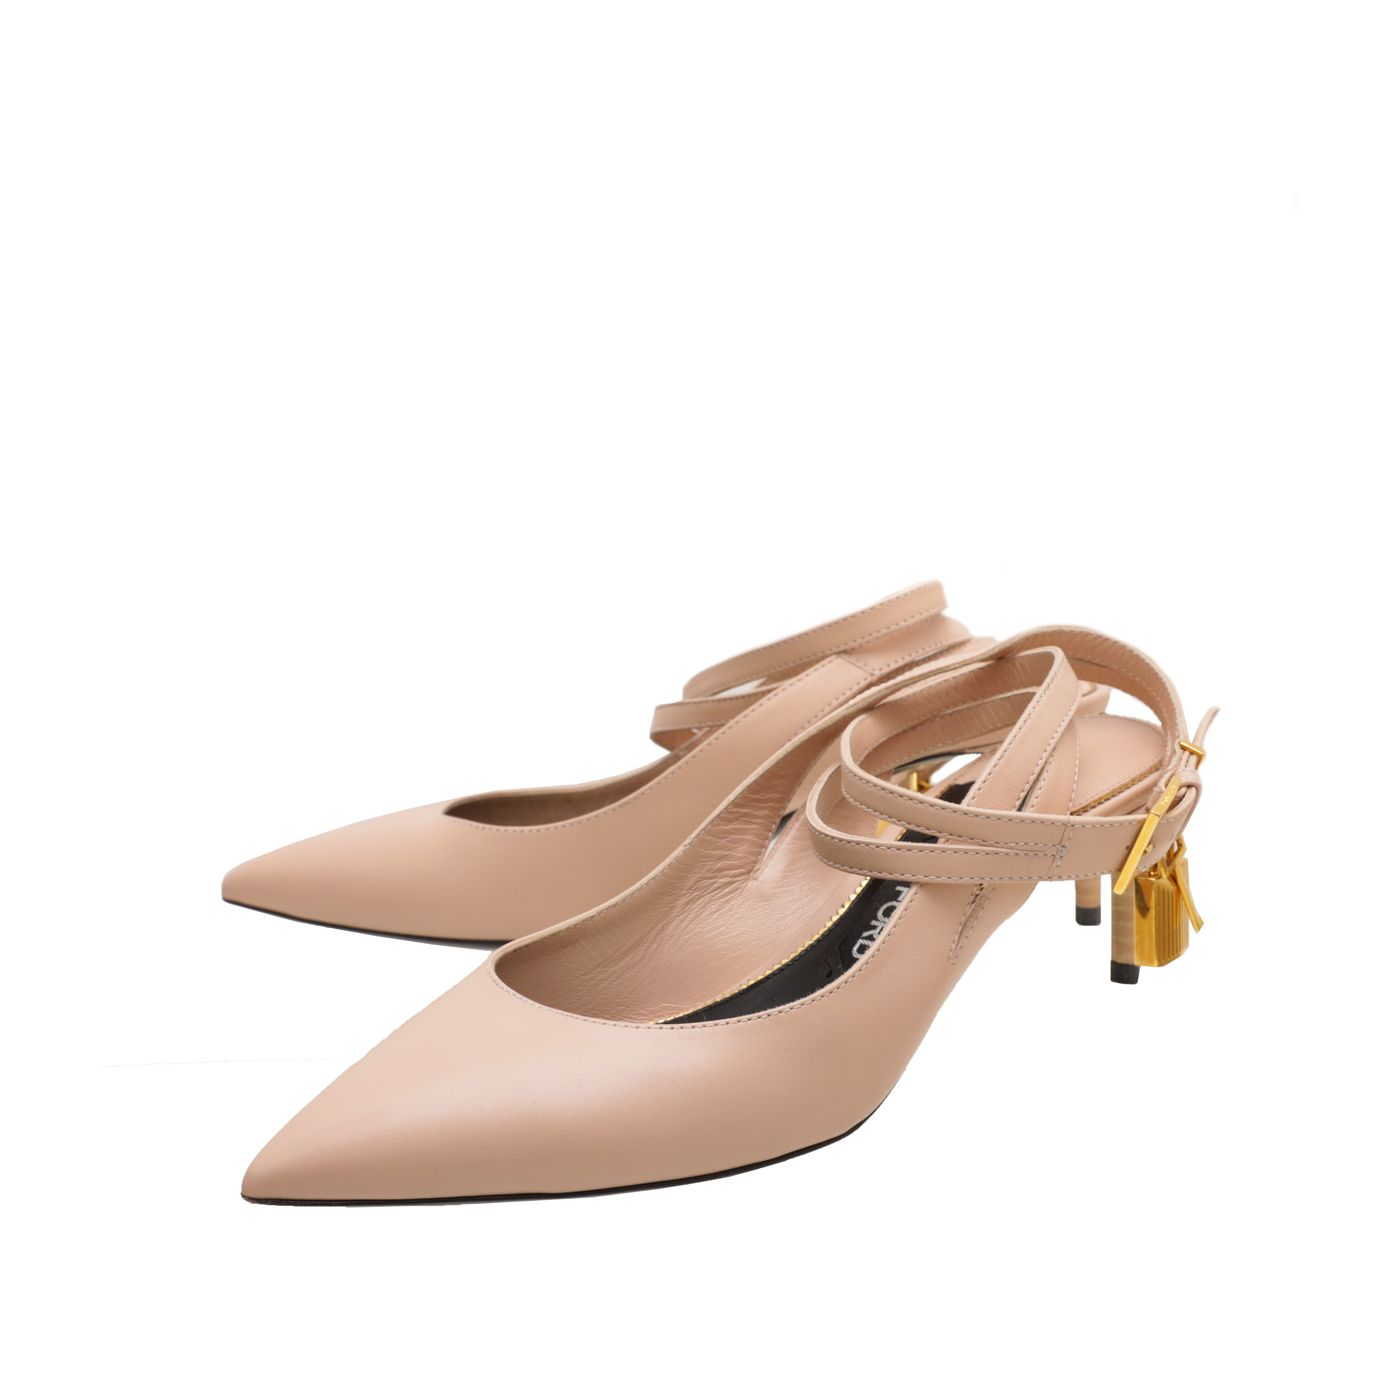 Tom Ford Nude Ankle Lock Strap Slingback Pumps 39.5